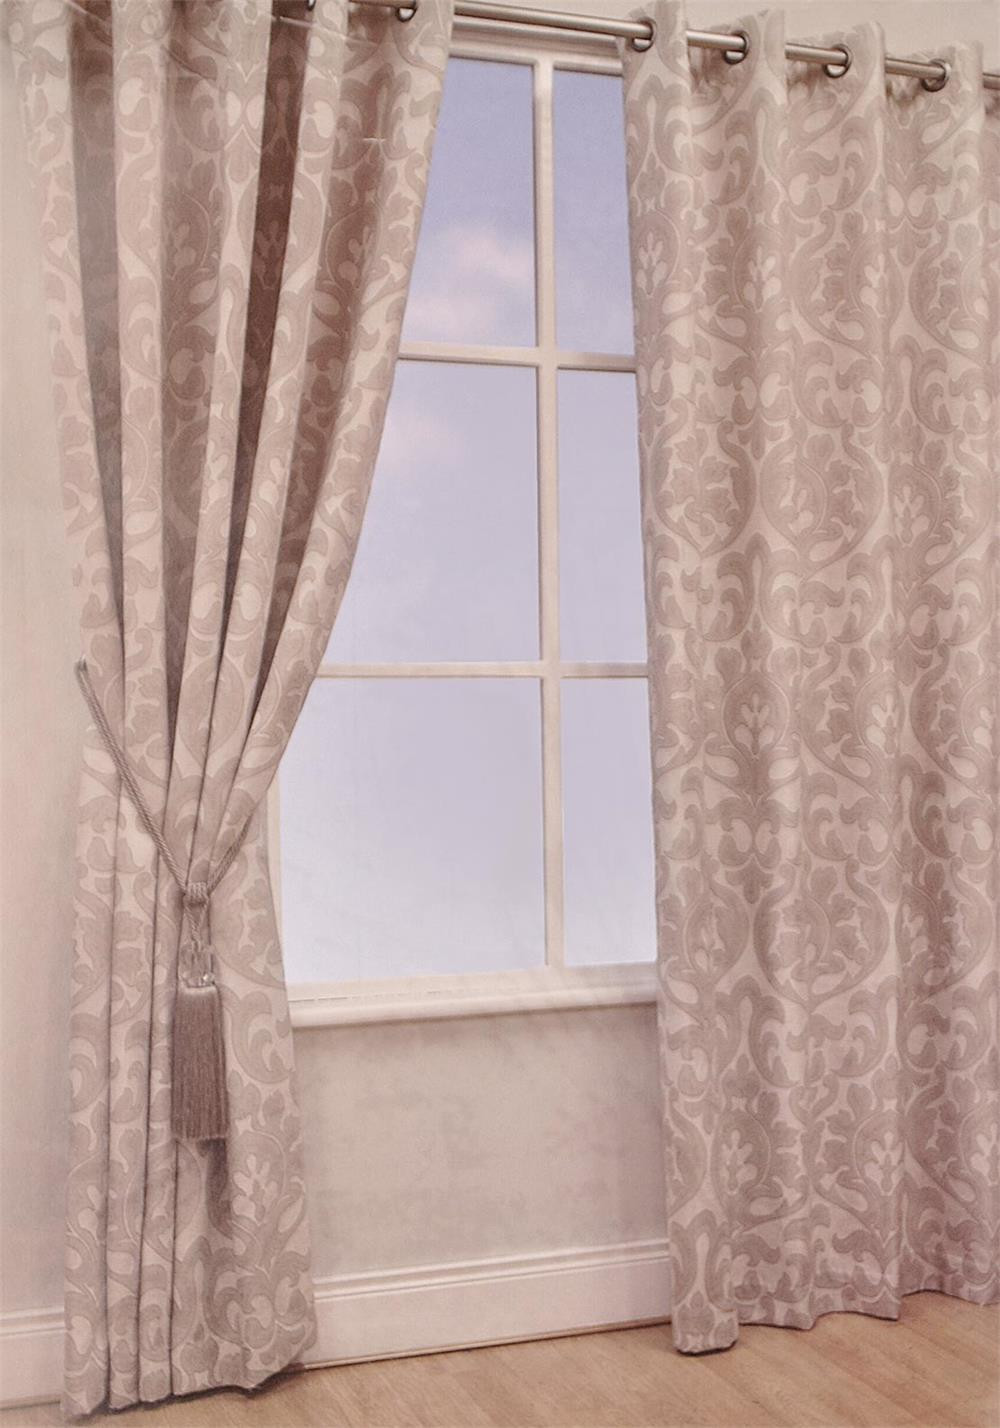 Scatterbox Dorset Eyelet Lined Ready-Made Linen Curtains, Cream and Beige